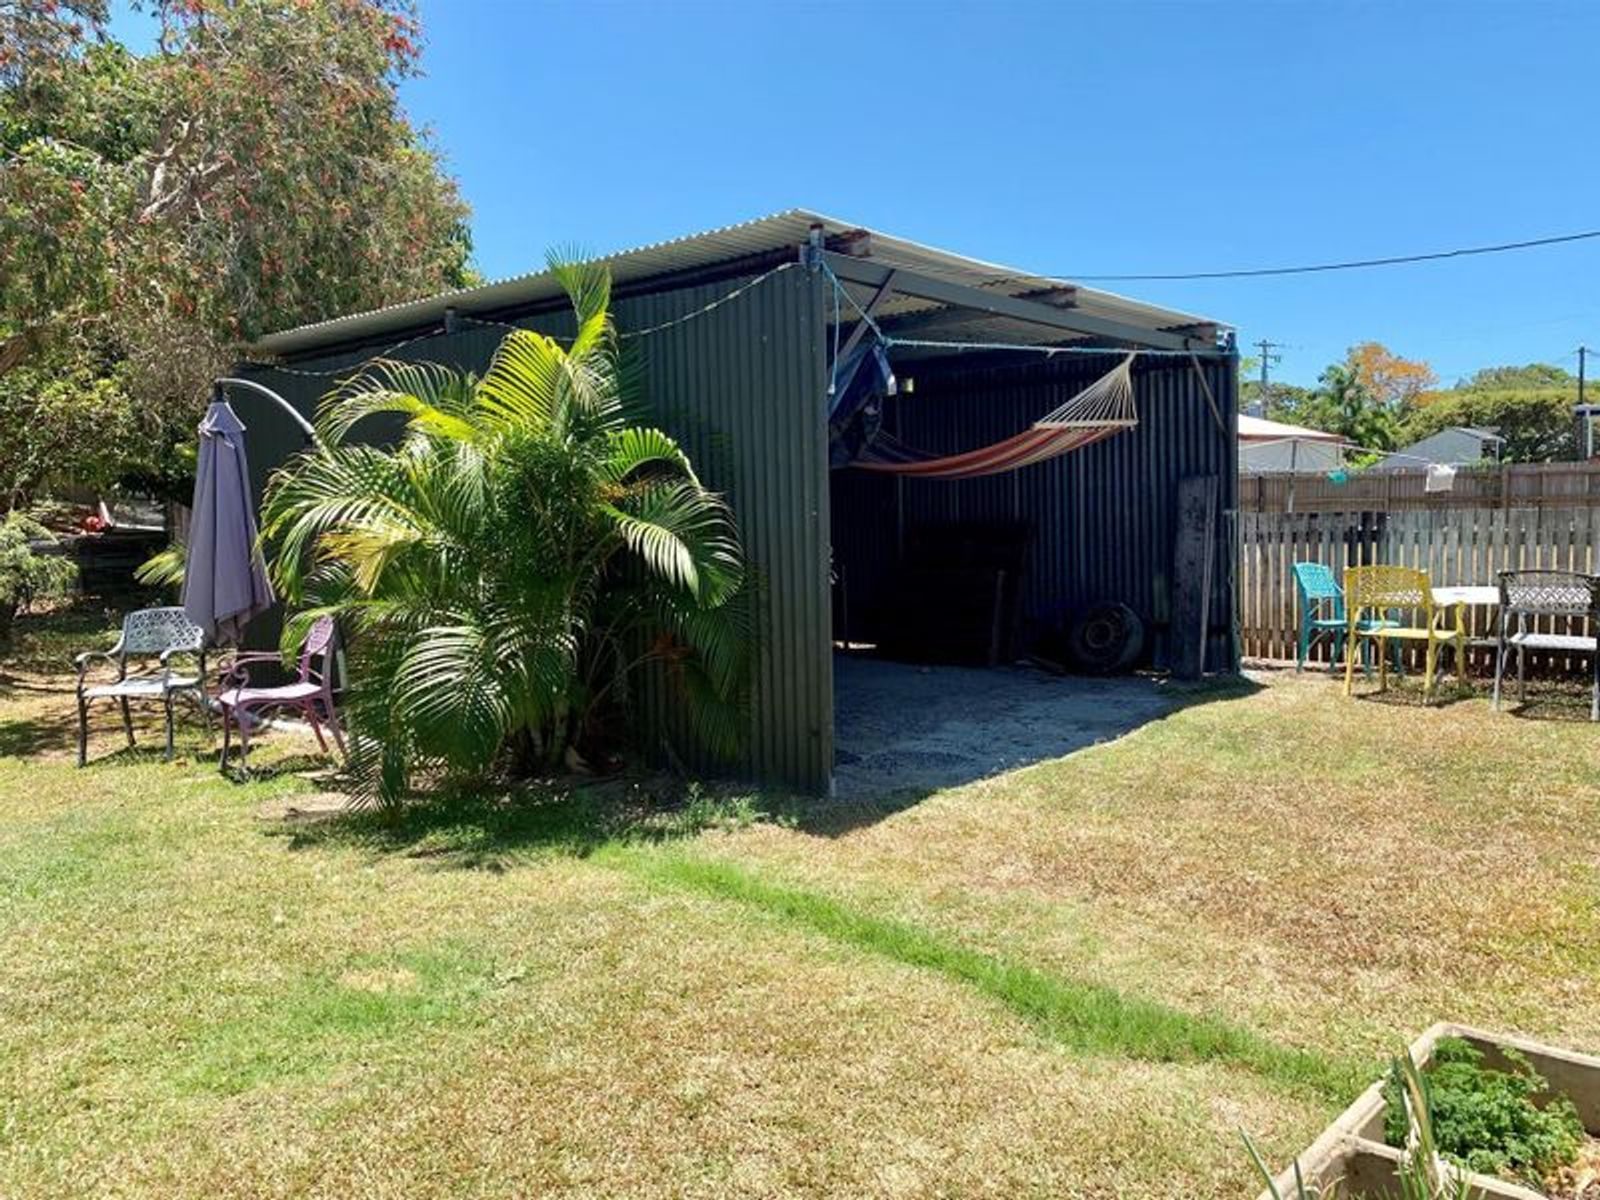 3 Gaylard Street, North Mackay, QLD 4740